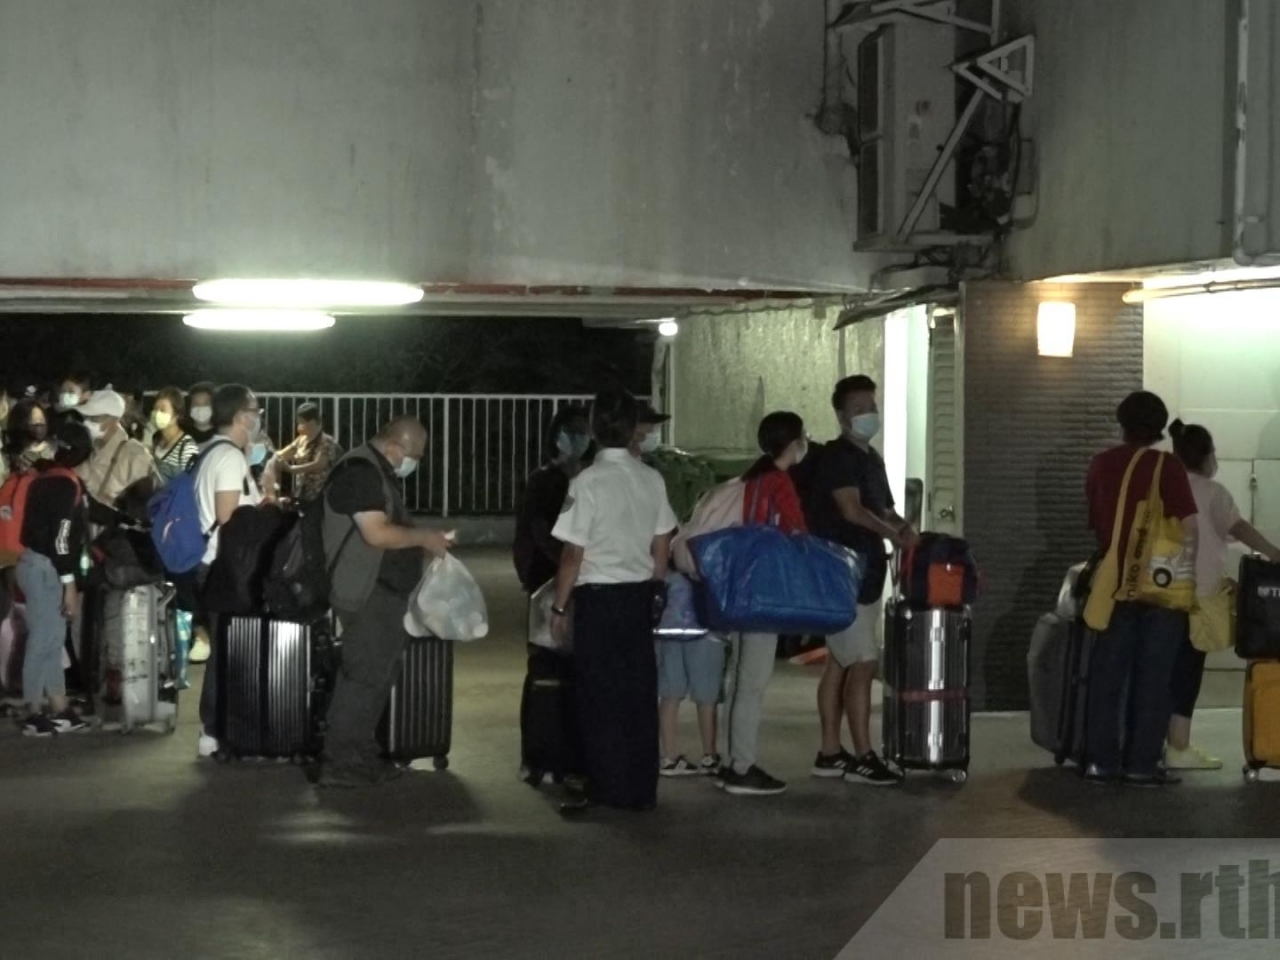 Residents of Block R at Allway Gardens return home after authorities released them from quarantine early. File photo: RTHK